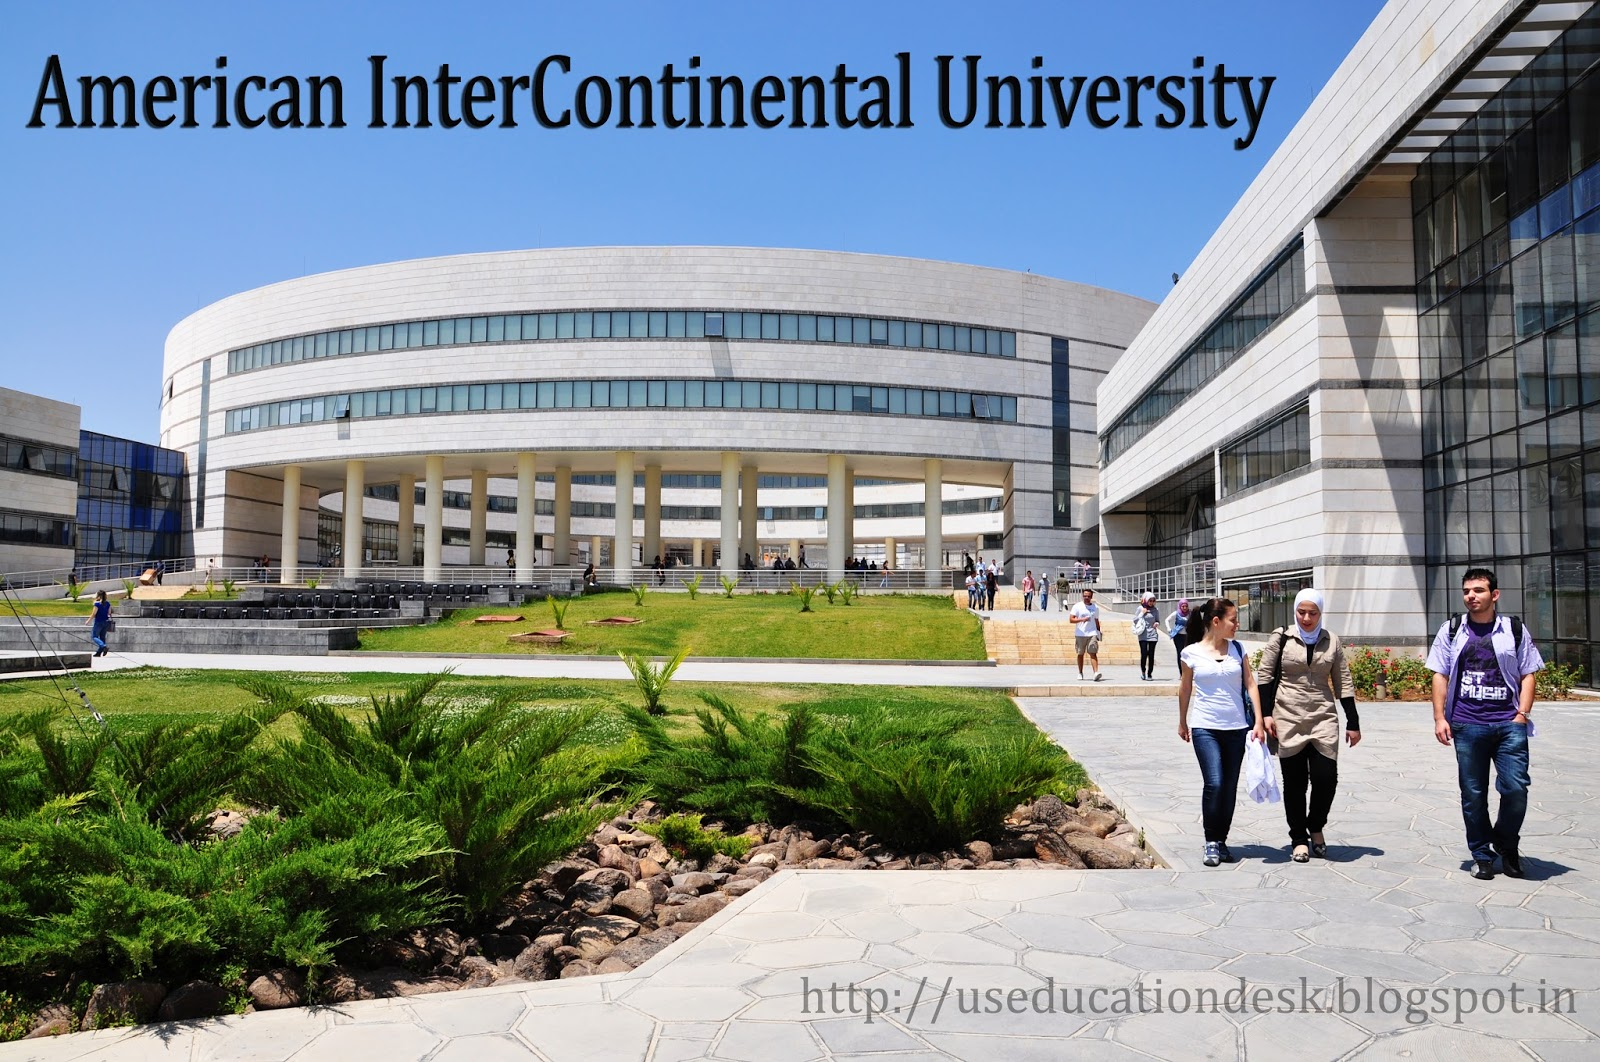 American Intercontinental University  Insurance Schools. International Studies Department. Nursing Education Masters Programs Online. Custom Fiber Optic Cable Assemblies. Cable Companies In Cincinnati. Criminal Justice Essays Carlsbad National Bank. Business Plan For Online Store. Zillow Loan Calculator Security Systems In Ct. Outcomes Health Information Solutions